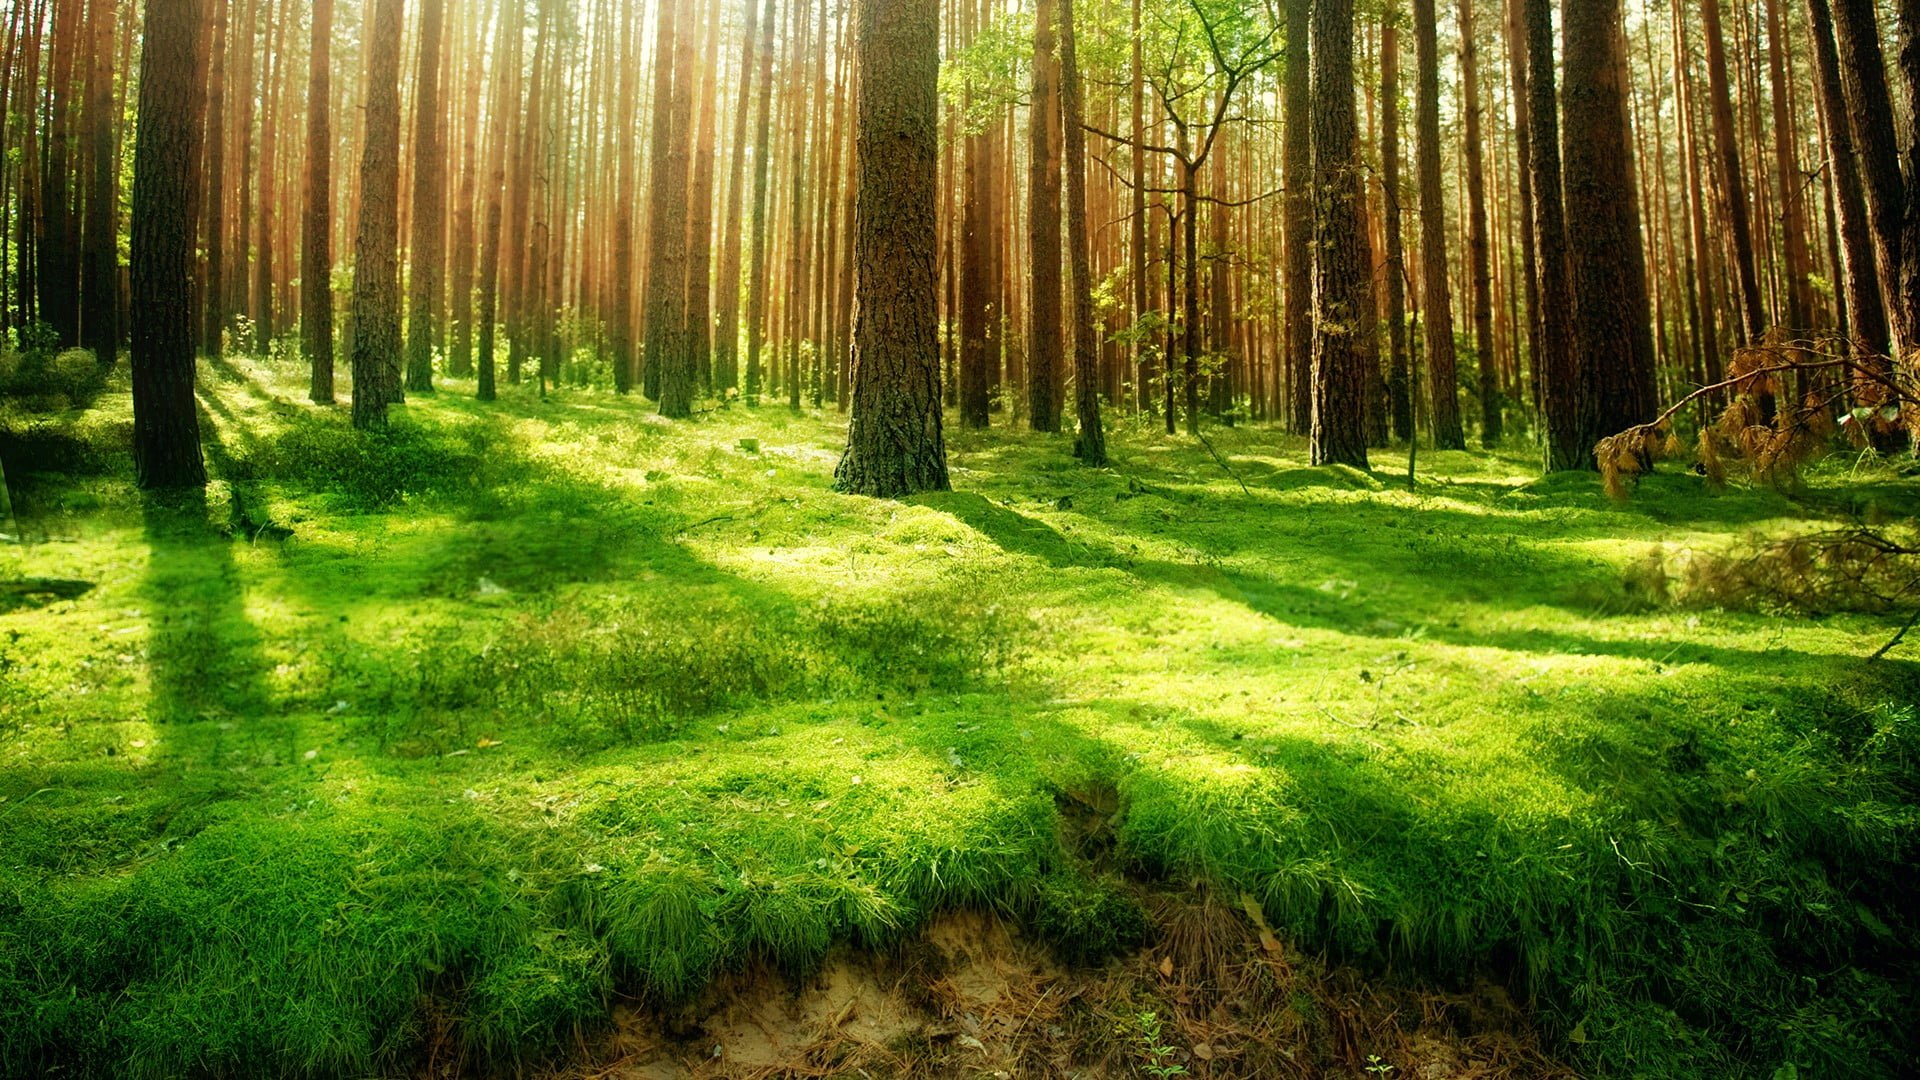 Forest Hd Wallpaper Images Backgrounds Trafoos